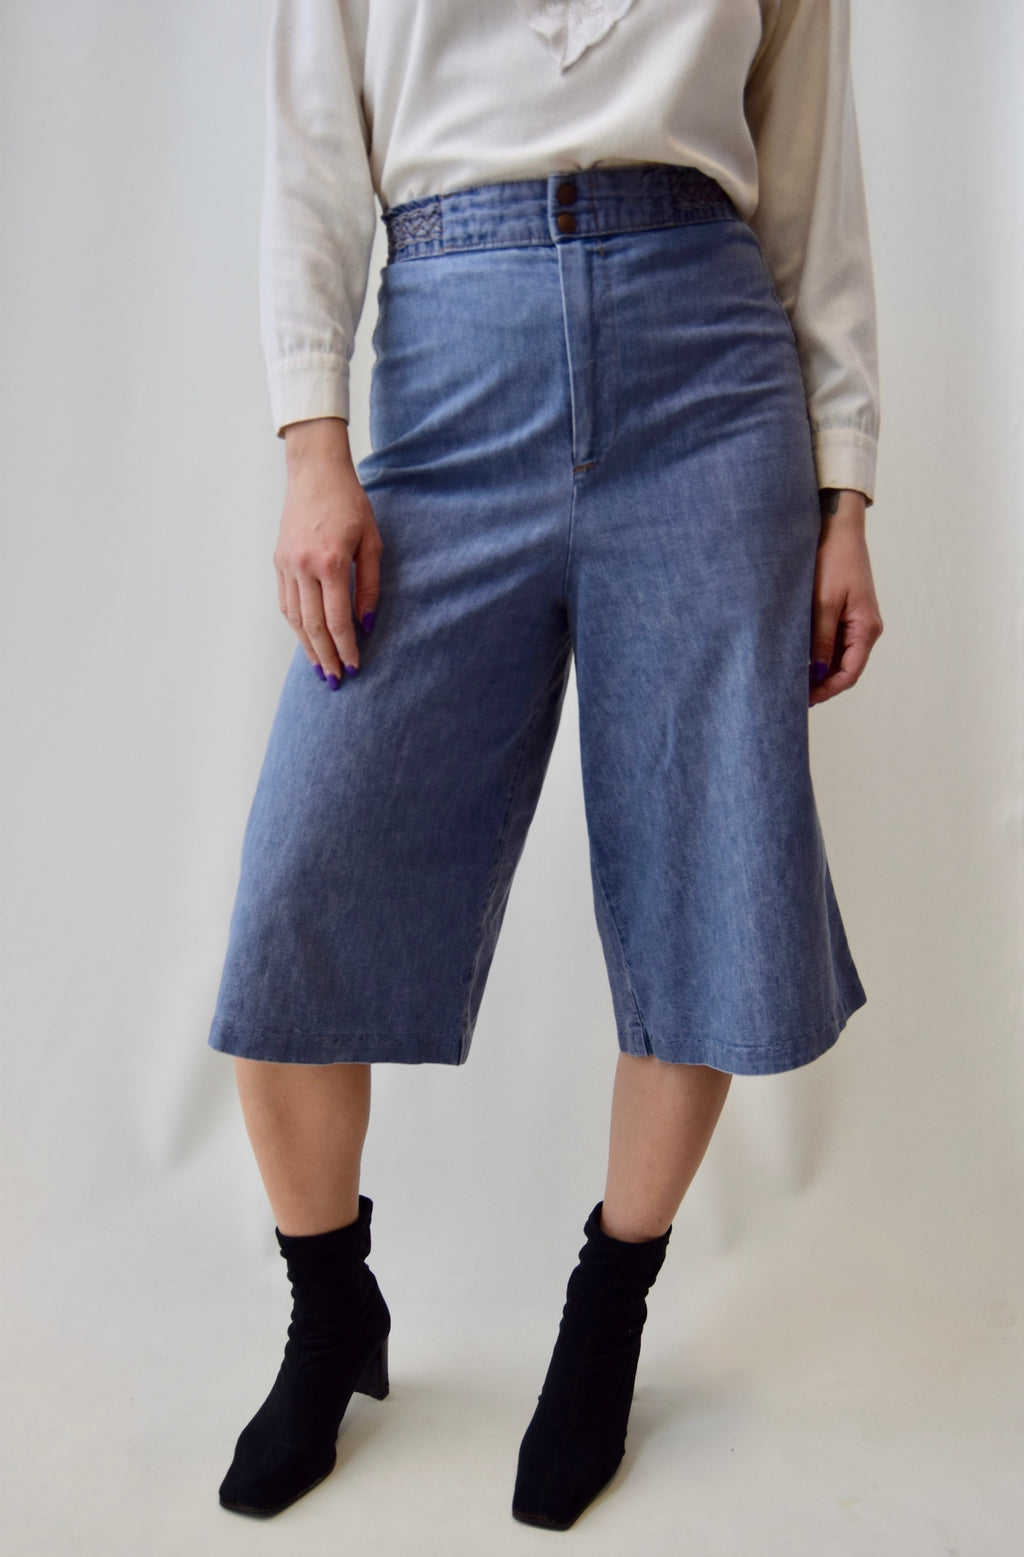 70's Denim Braided Waist Culottes FREE SHIPPING TO THE U.S.